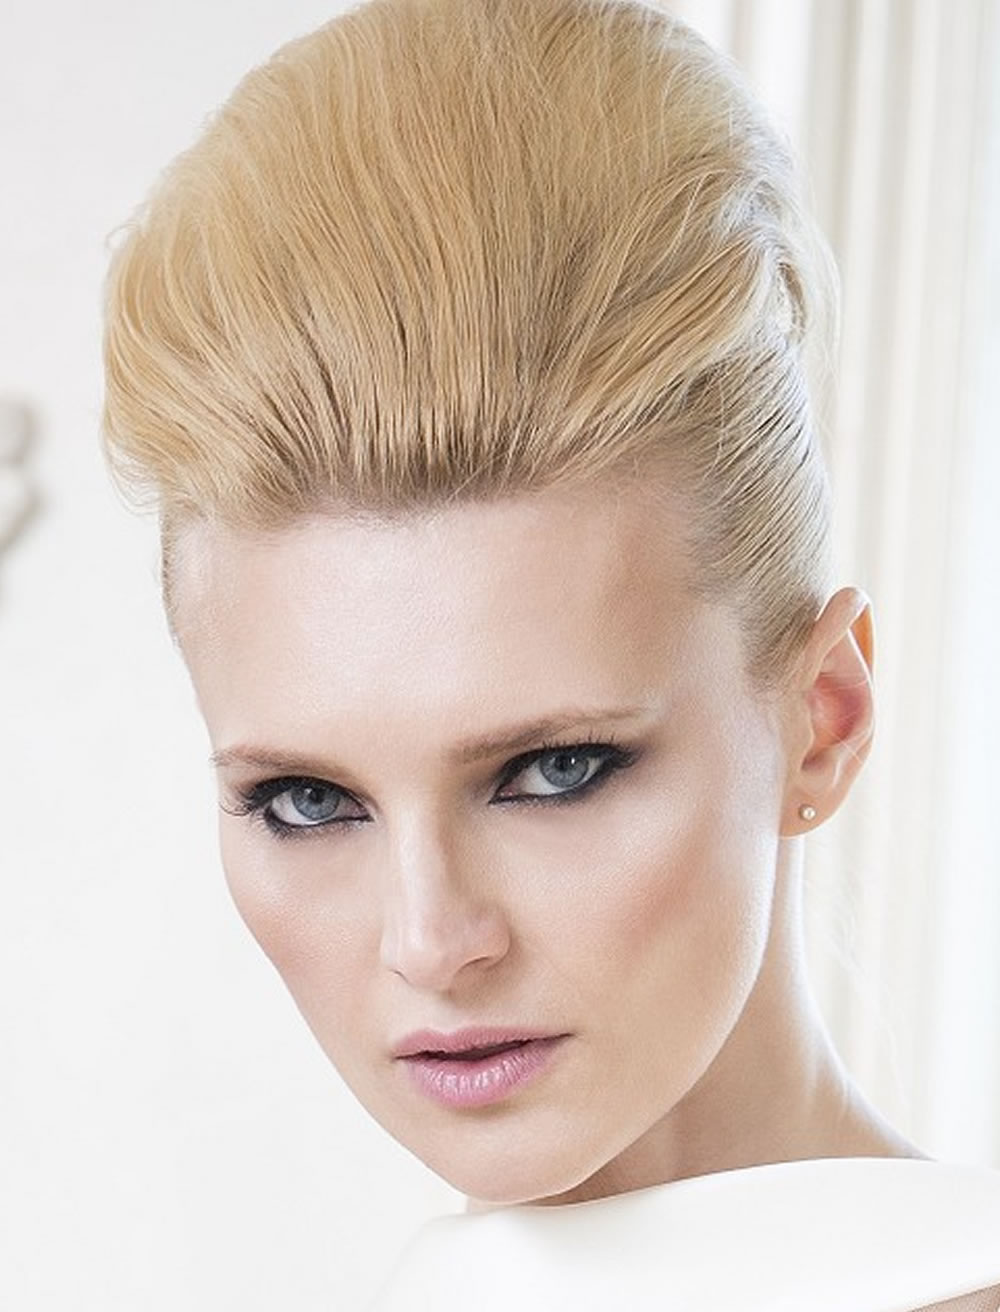 Updo Hairstyles For Round, Square Oval Faces 2018 - 2019 4